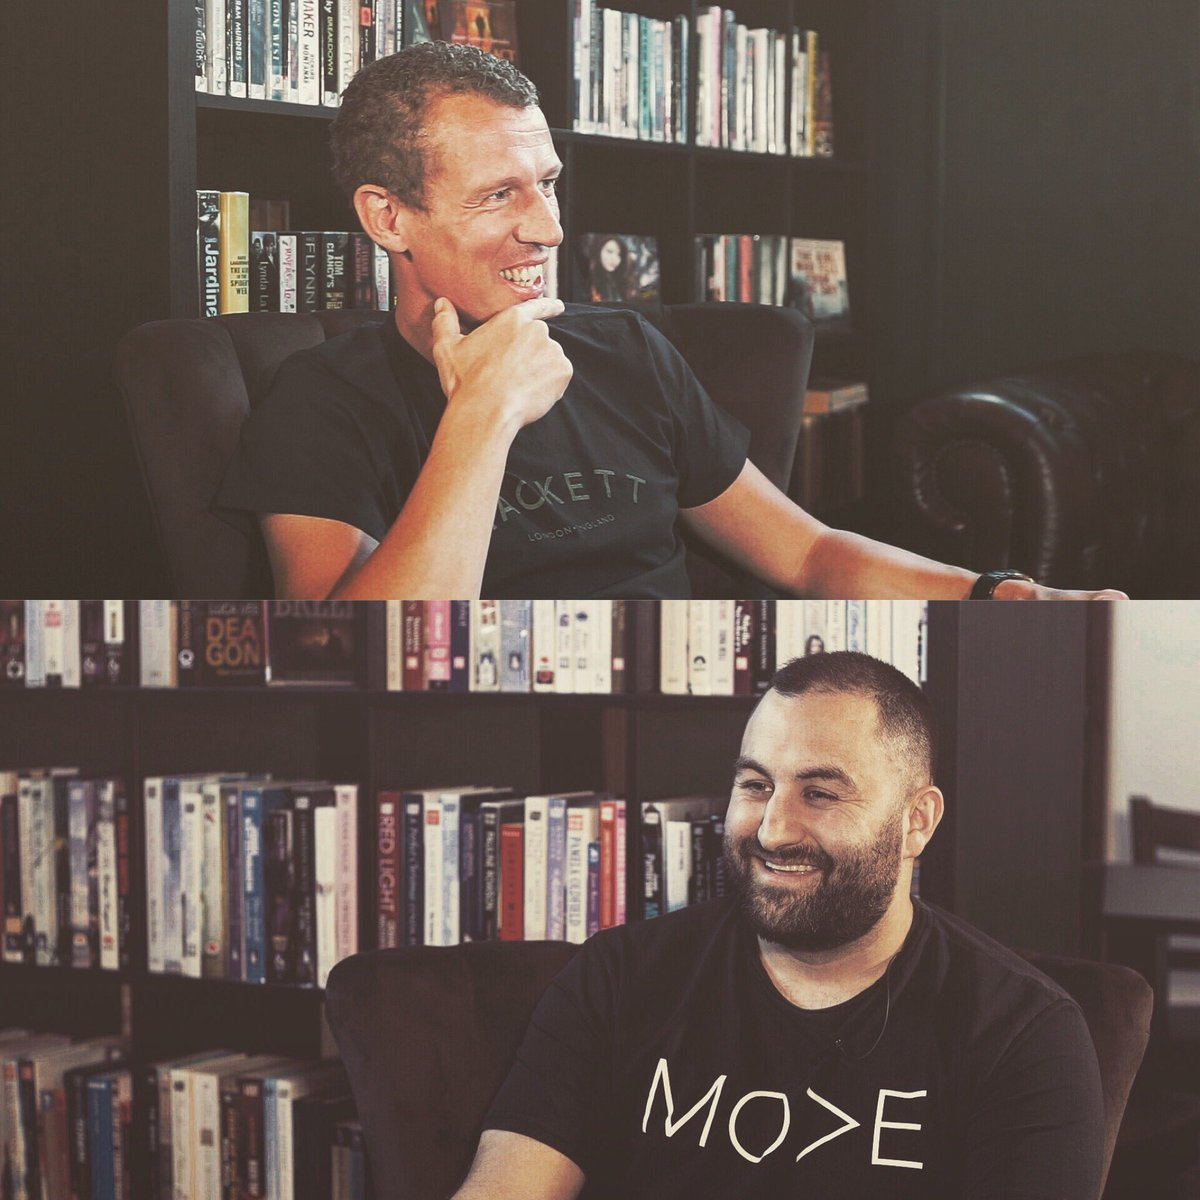 Pictures from today's very first Leadership Club Podcast, talking about mindset, circle of influence, education and investing in our communities with my friend and fellow entrepreneur @danielezzatvar looking forward to sharing the full thing with everyone. #leadership https://t.co/rTIK9Ol76B